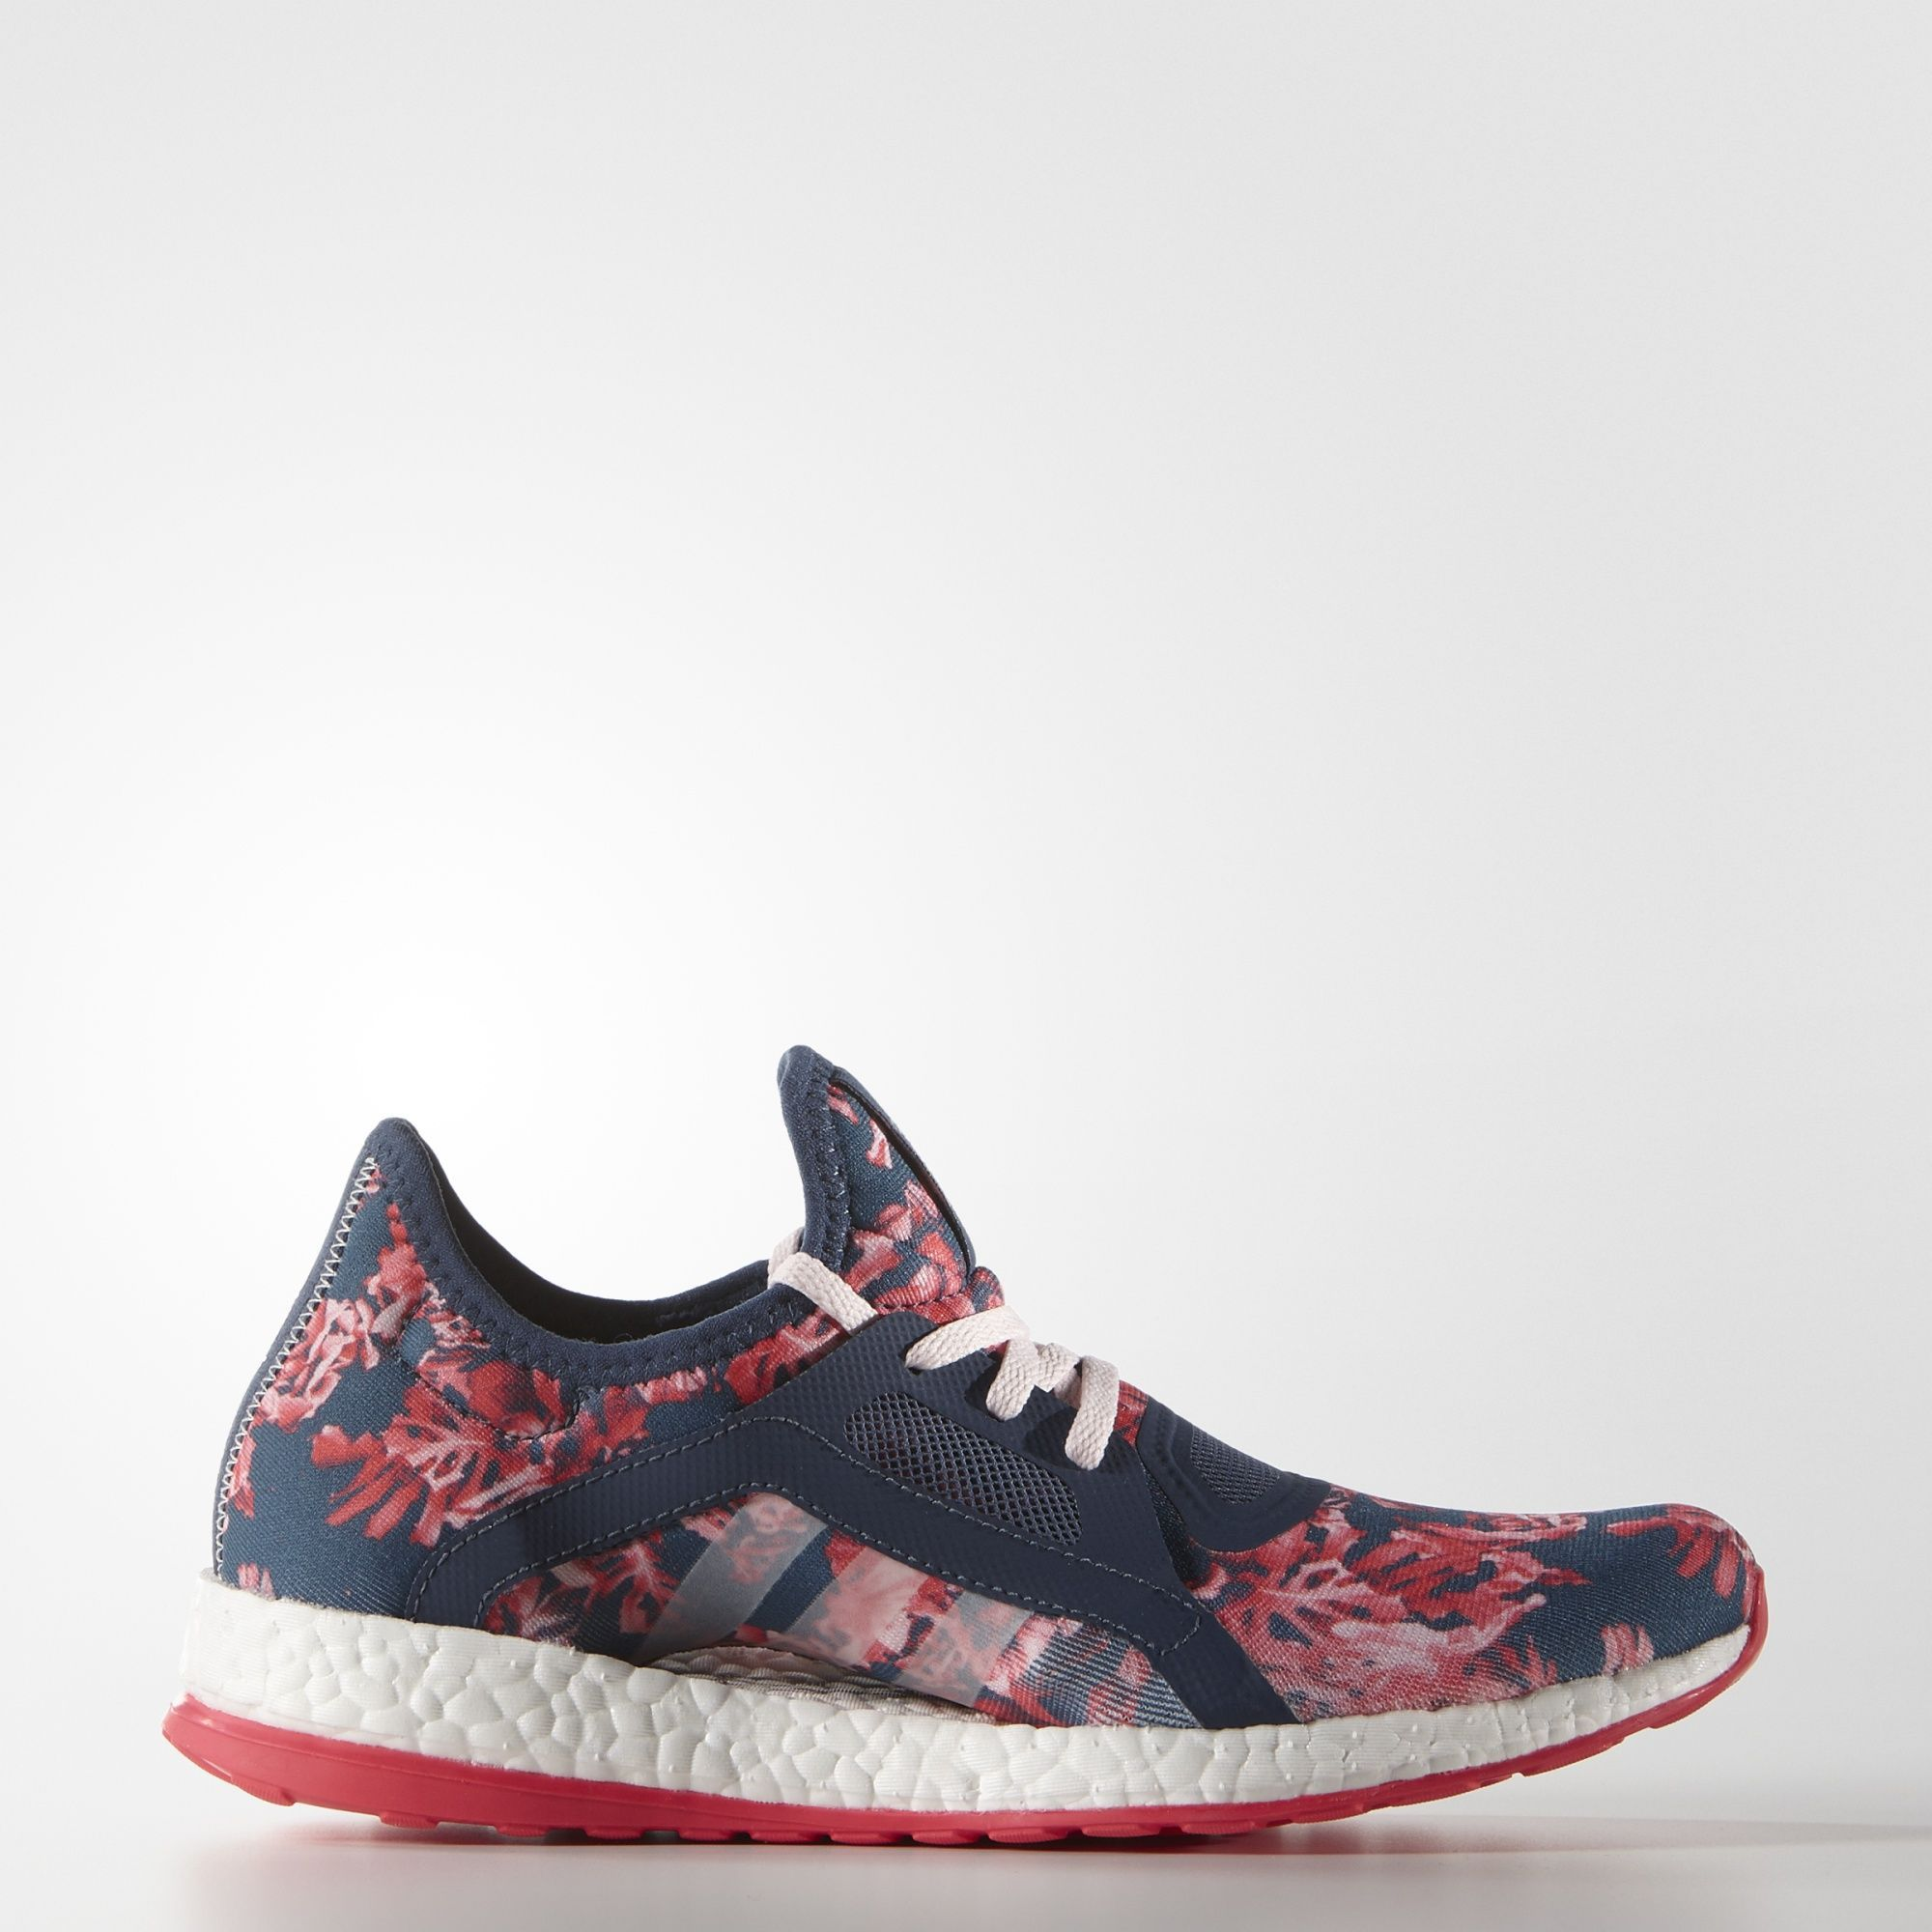 adidas - Pure Boost X Shoes with floating arch, made for women